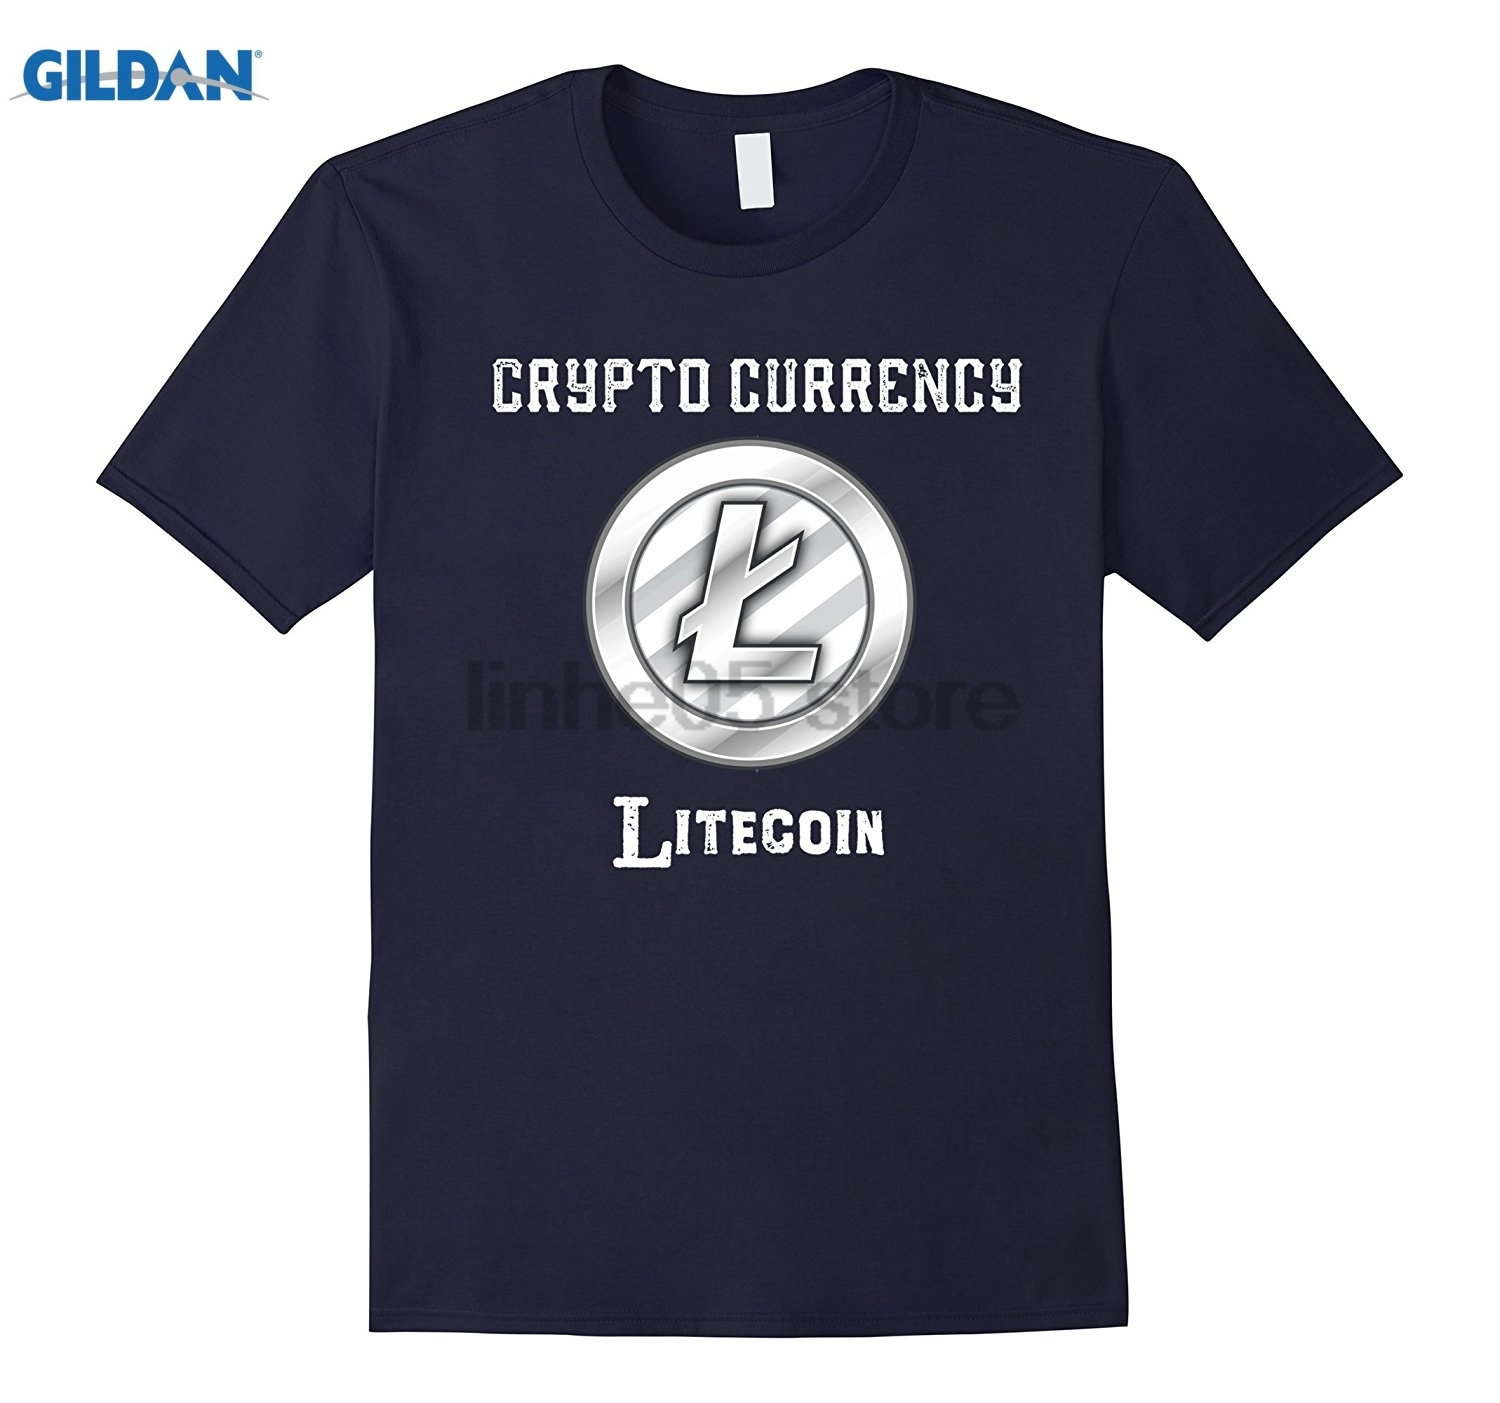 GILDAN Crypto Currency Litecoin T-Shirt Womens T-shirt ...